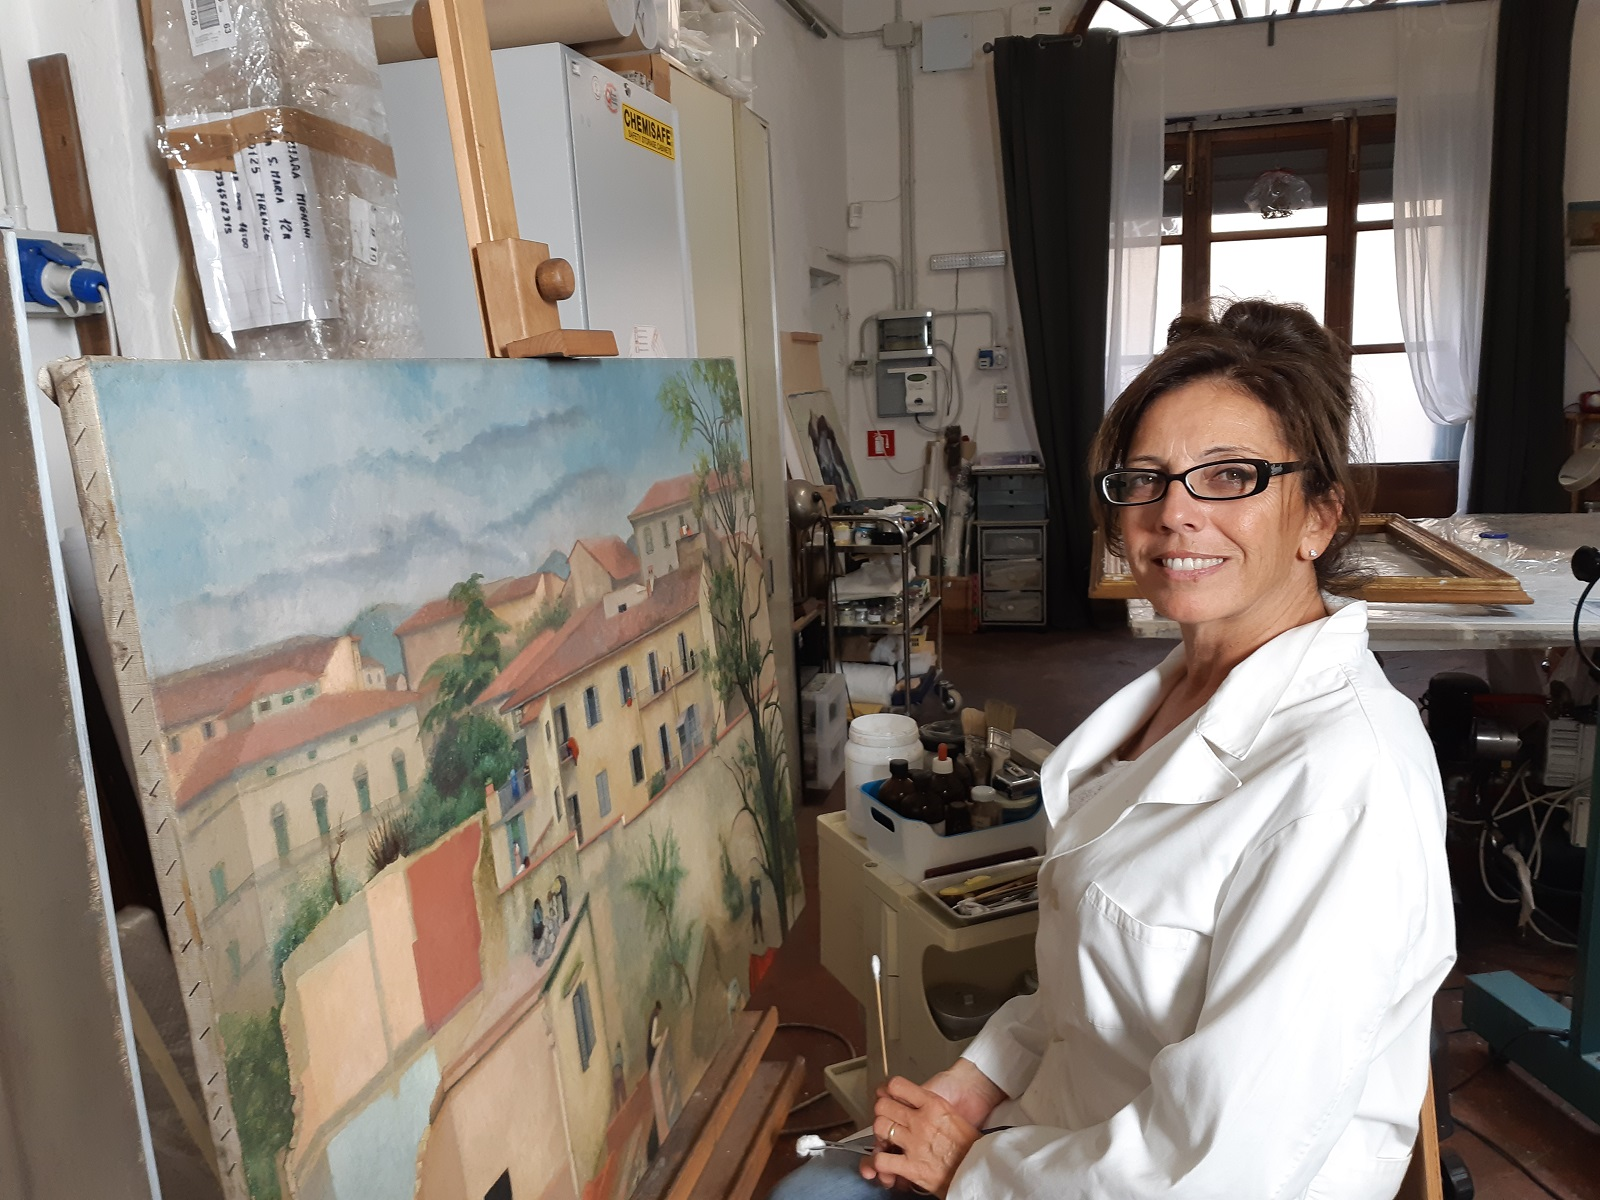 Restorer Sandra Pucci with Levasti's painting